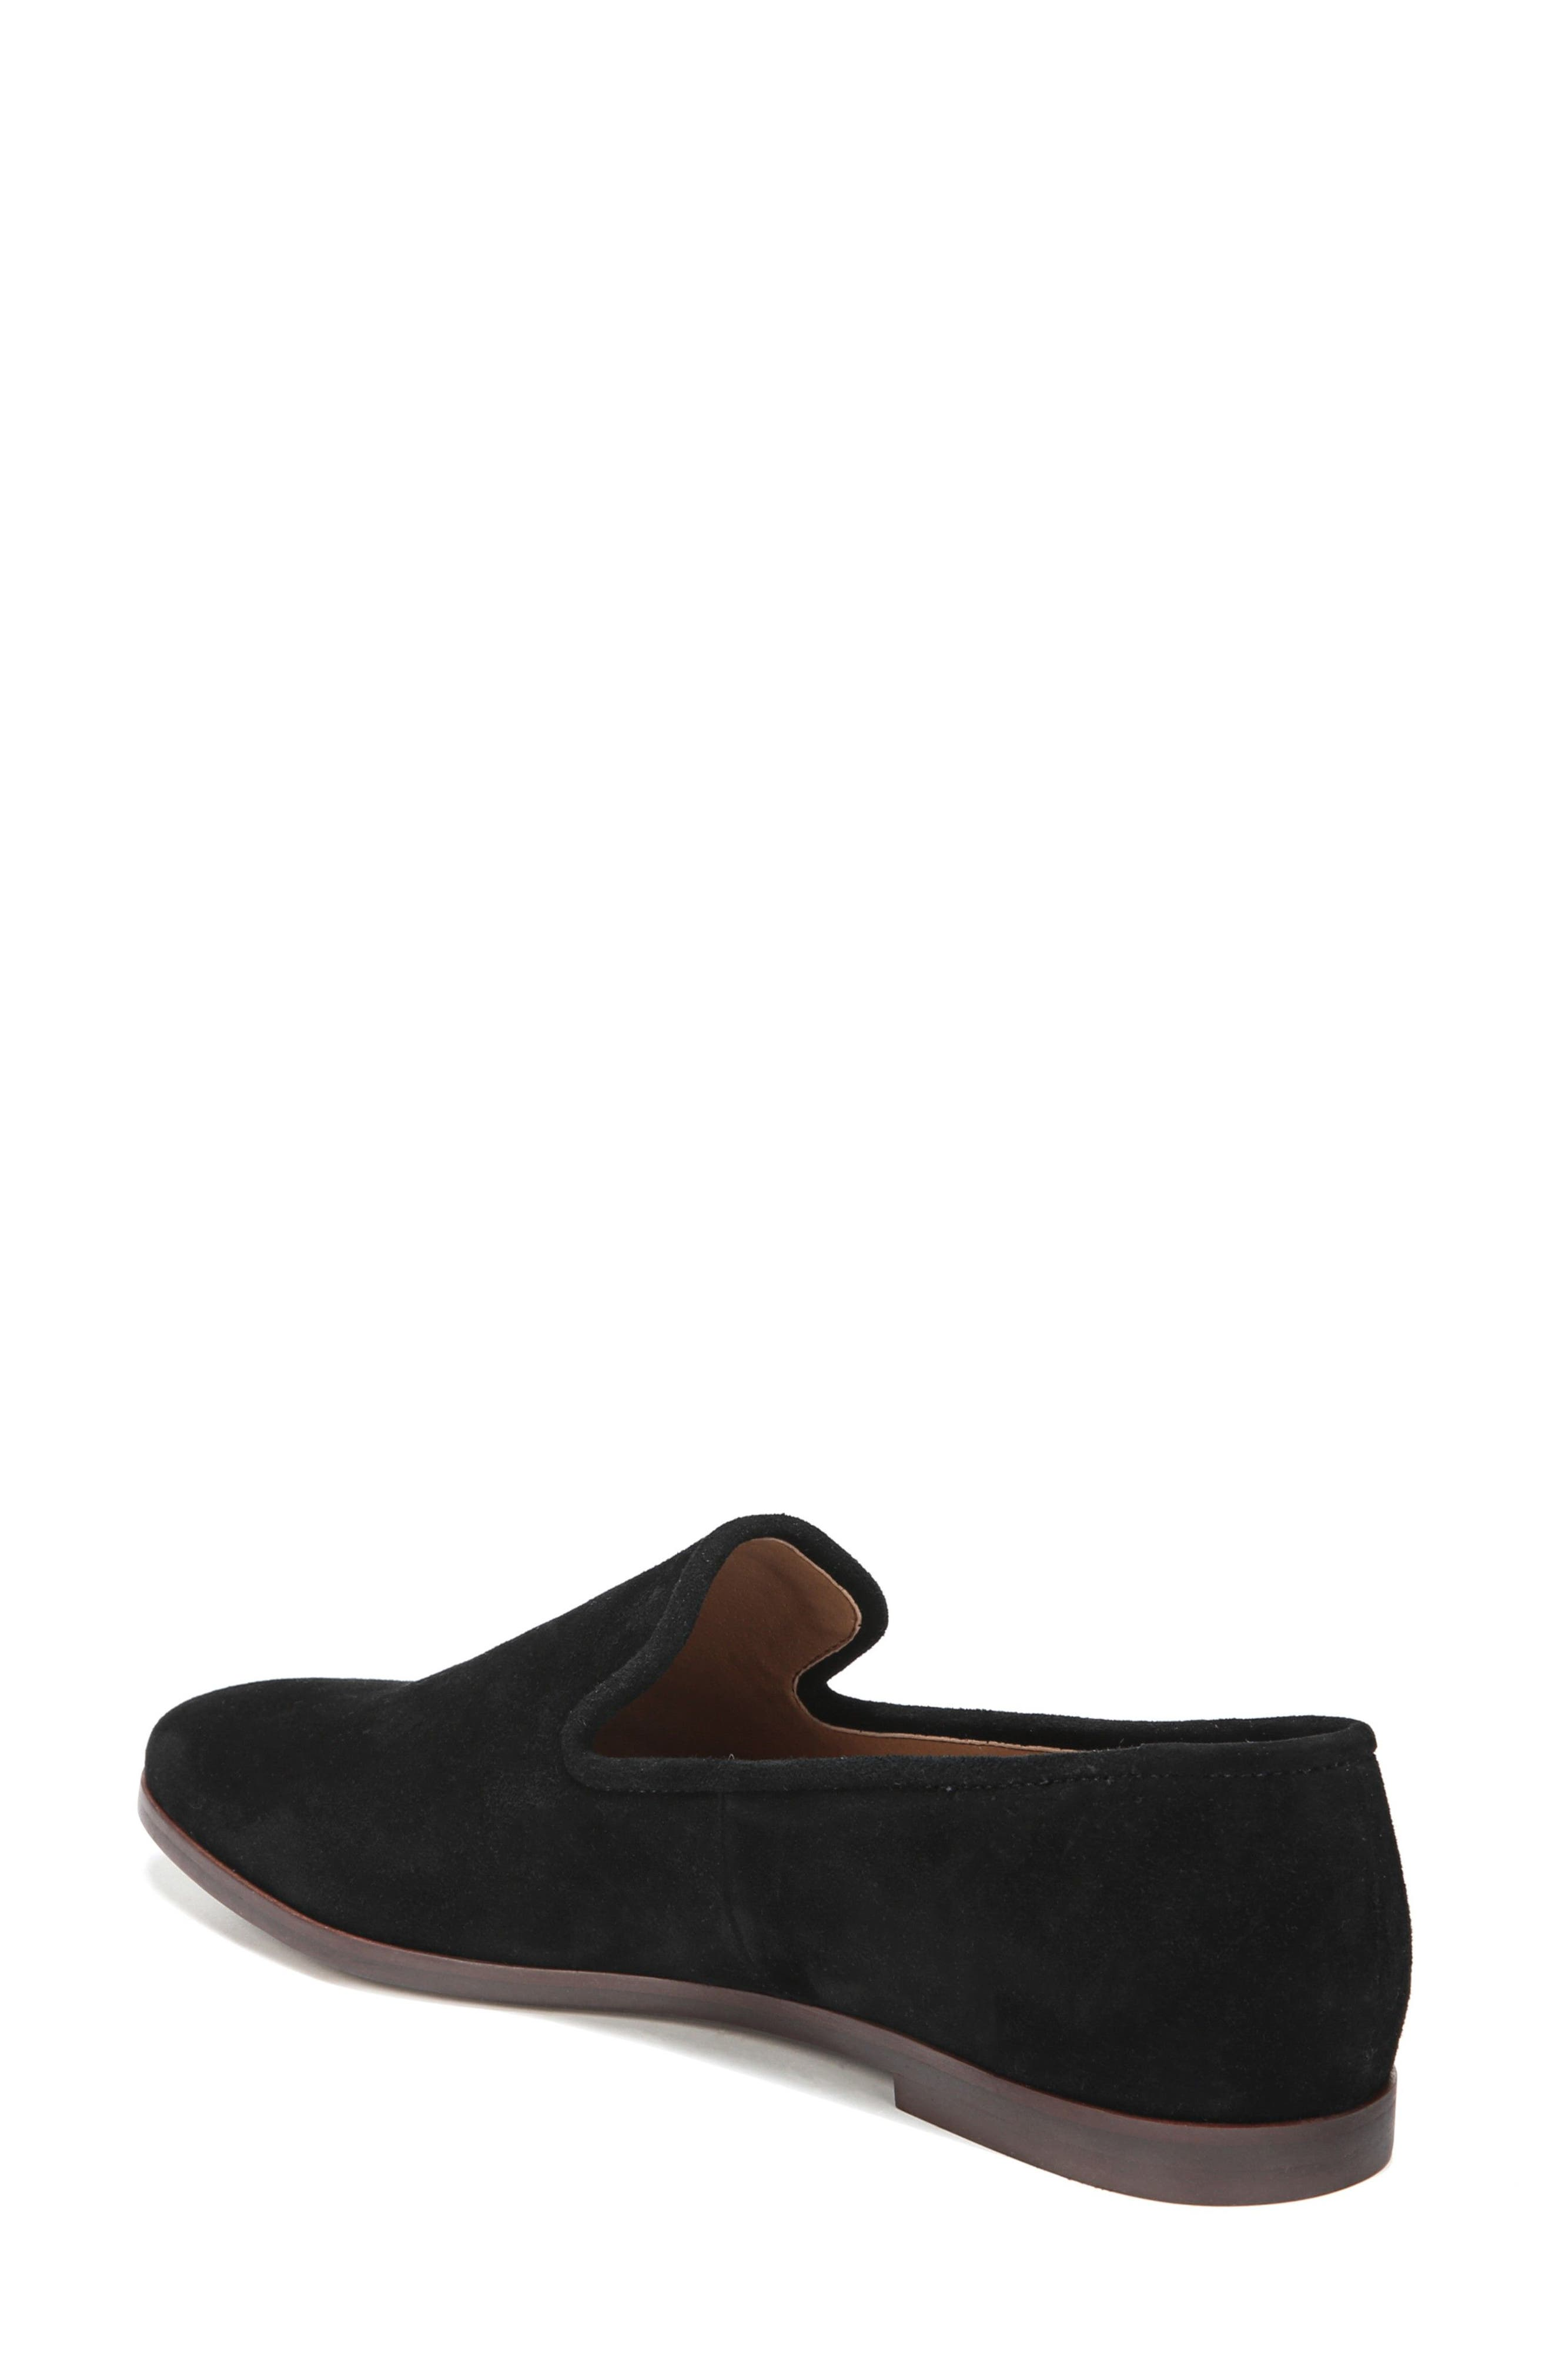 Ayers Loafer Flat,                             Alternate thumbnail 2, color,                             003